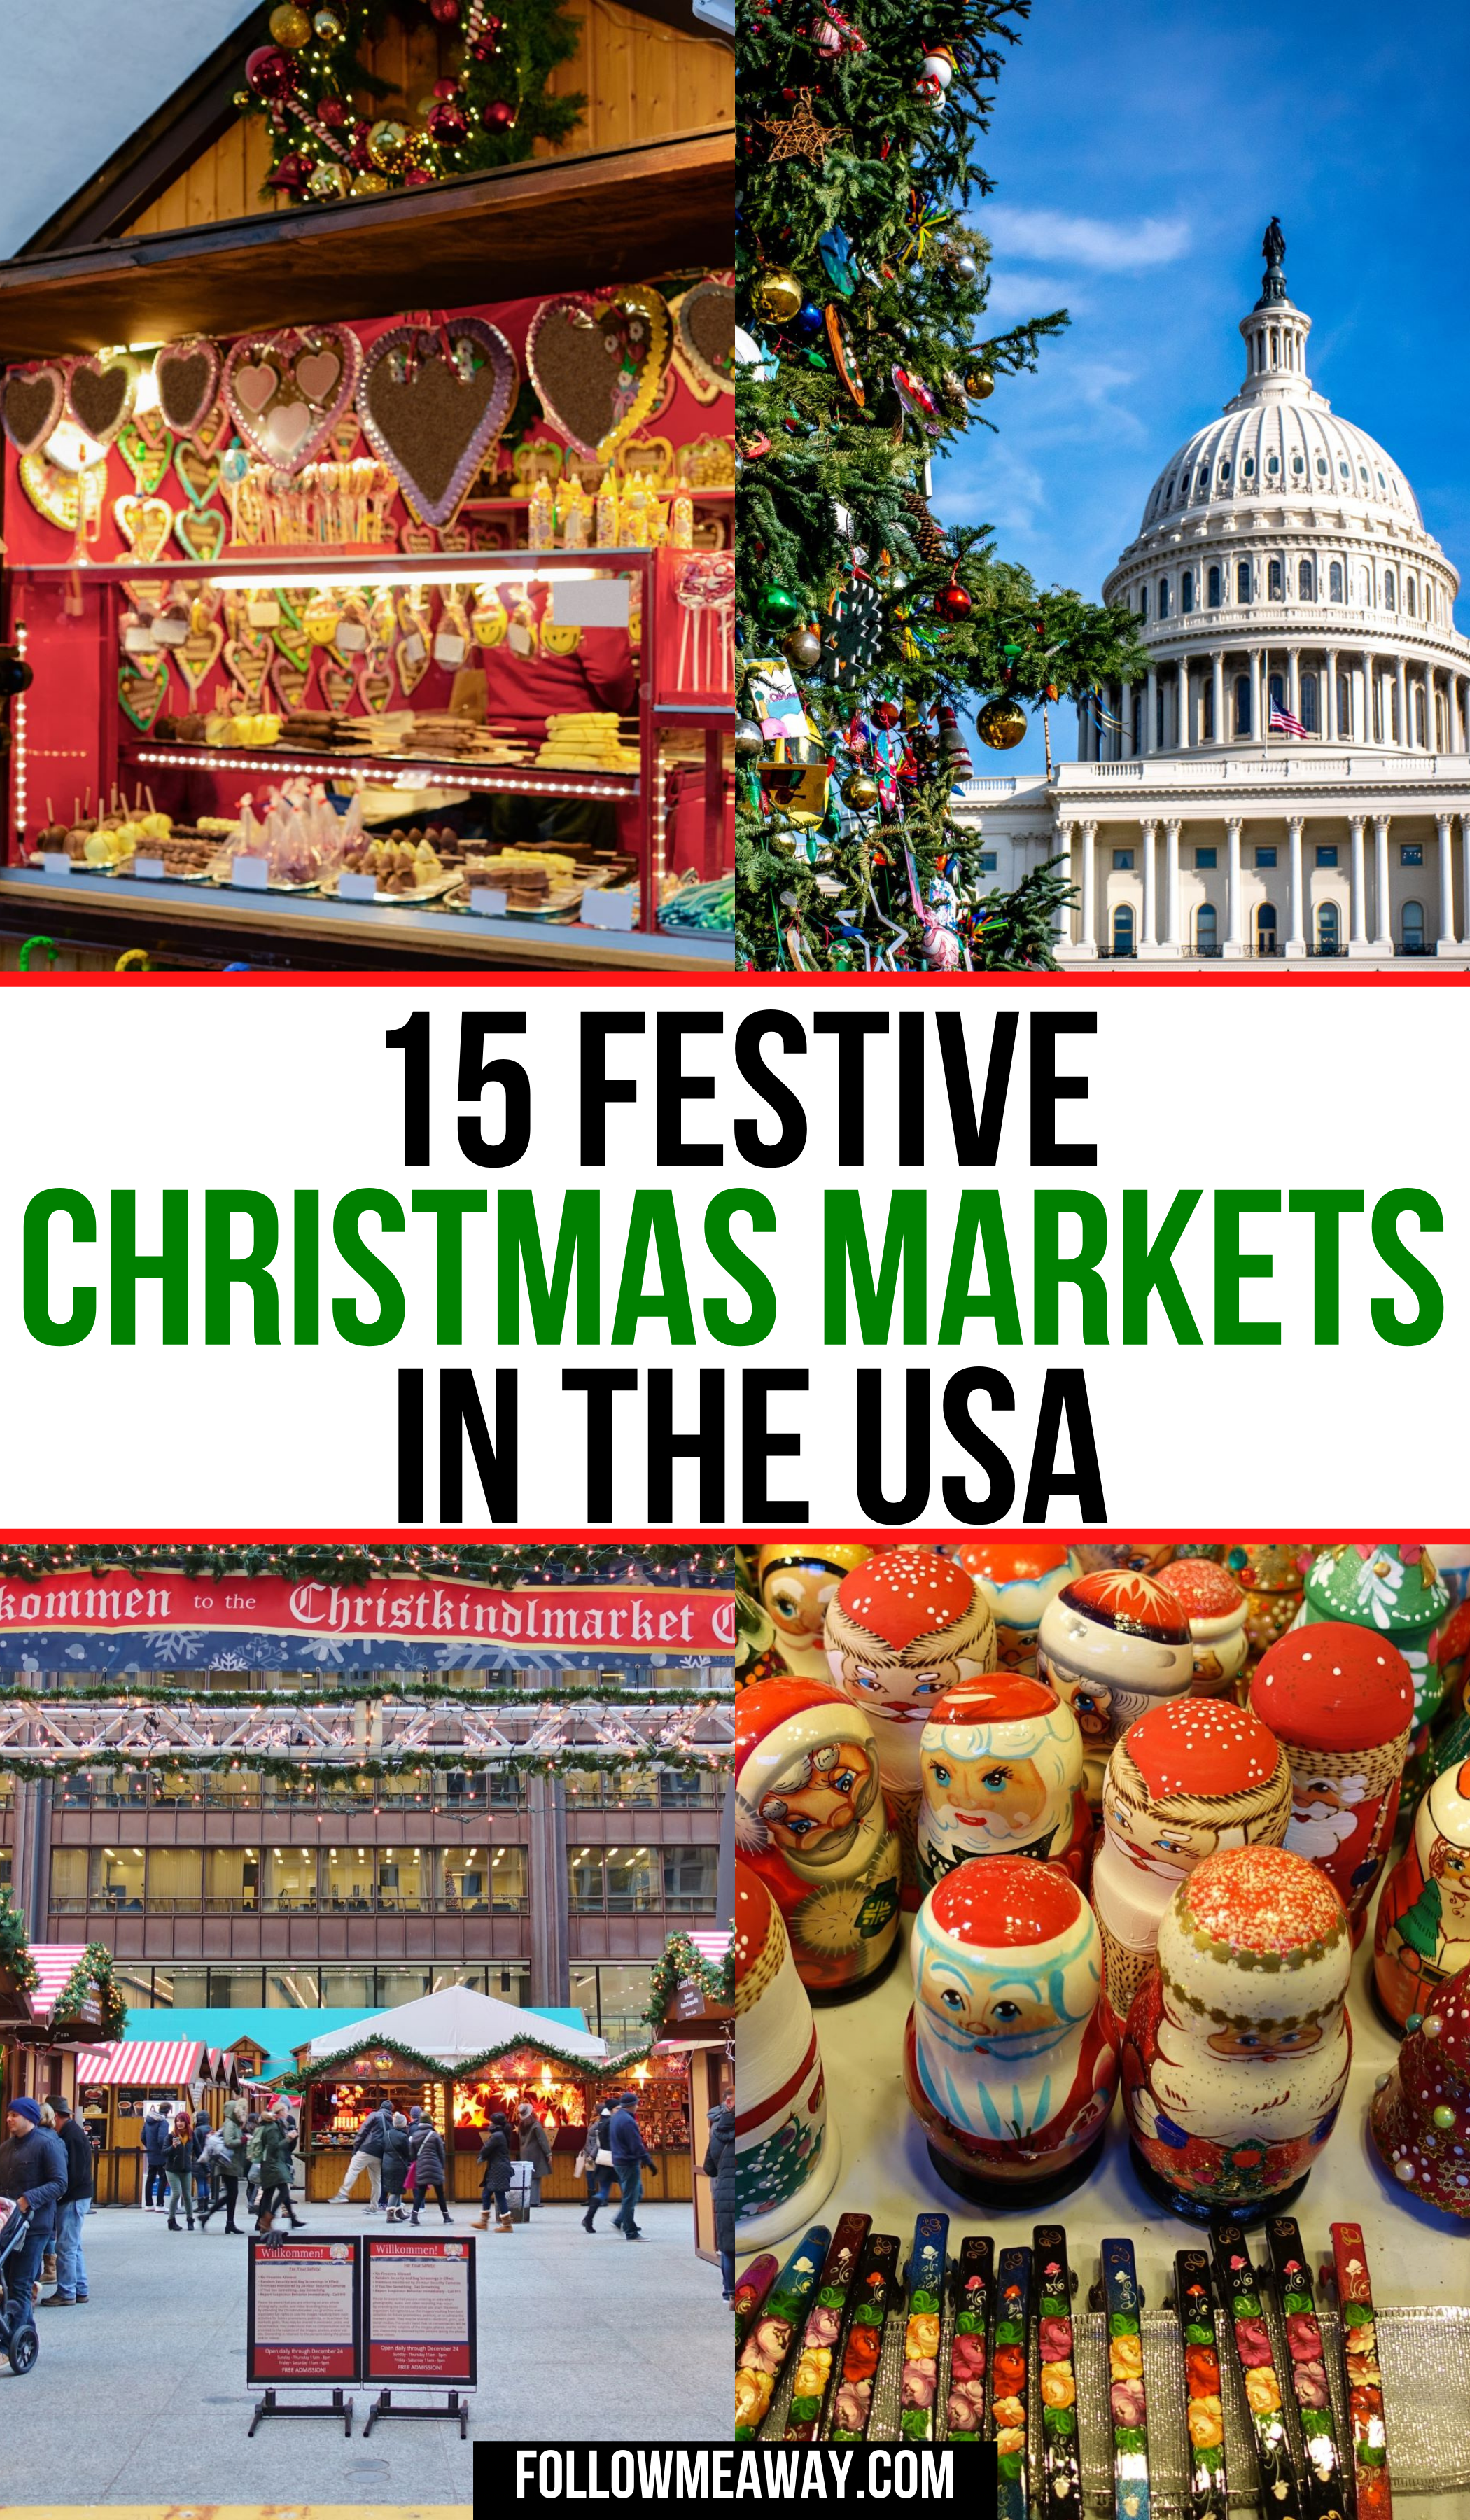 Christmas Market In Usa 2020 15 Festive Christmas Markets In The USA in 2020 | Usa travel guide